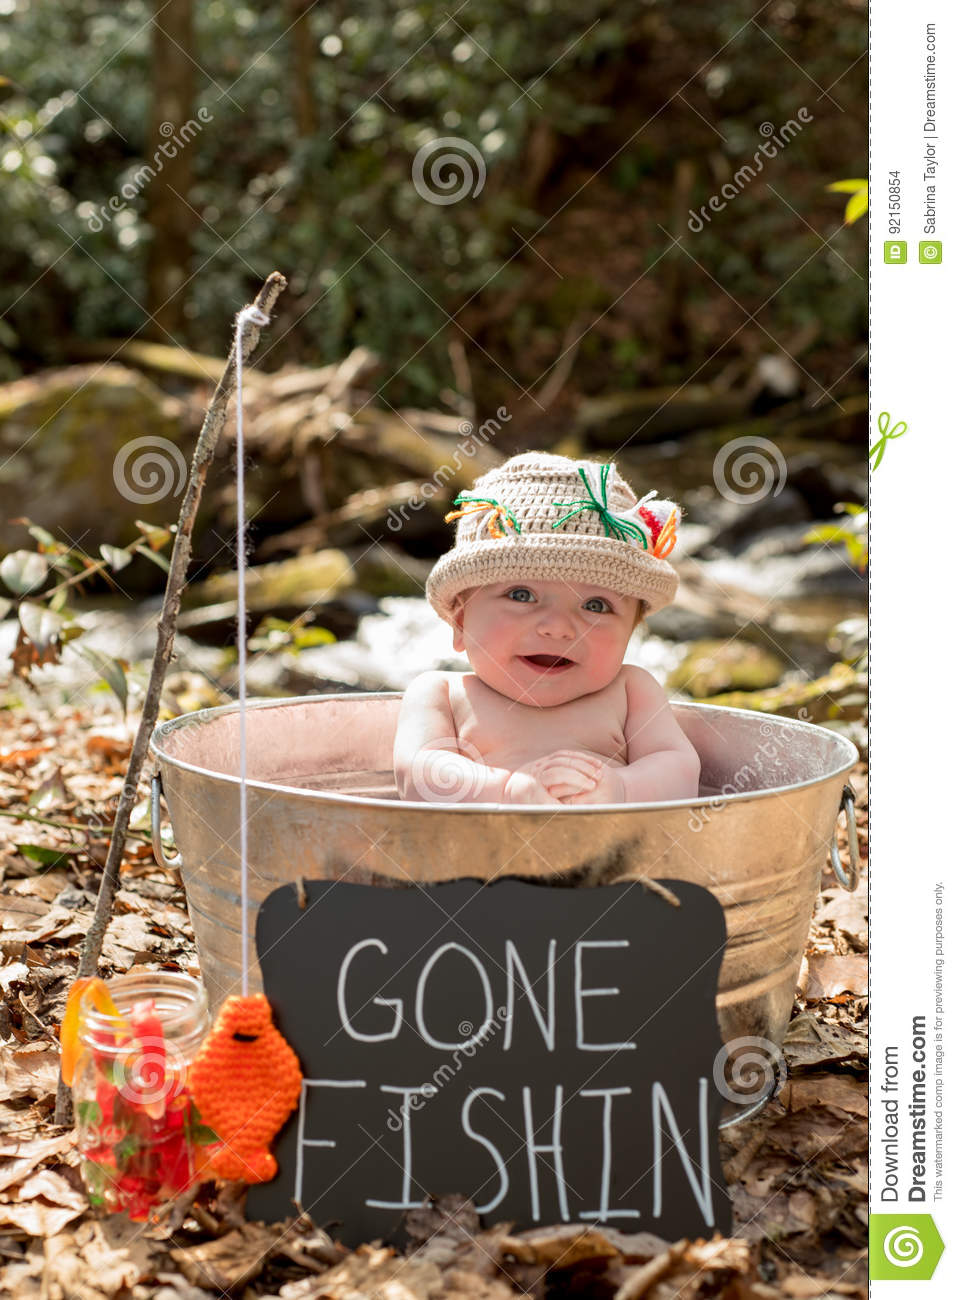 b69564cc4be91 Baby Boy In Metal Pot With Sign Gone Fishing Stock Photo - Image of ...